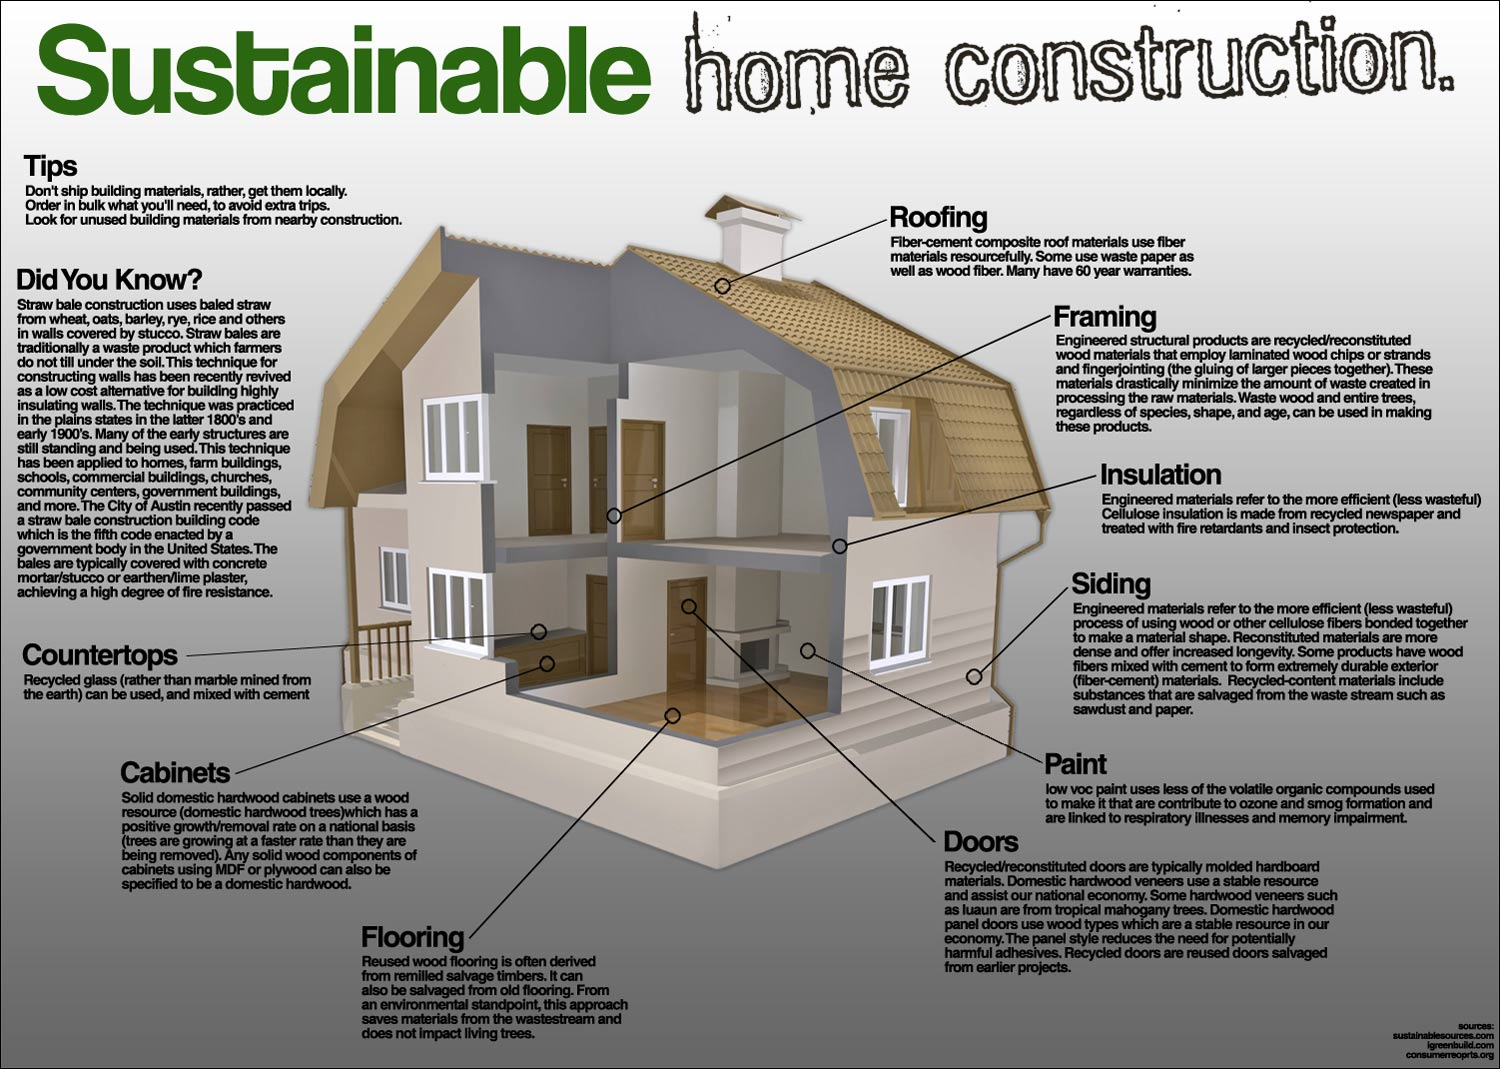 There Is Much Talk At The Moment About Ozone Layers And Sustainable Building Practices But Very Little Help On How To Design Build